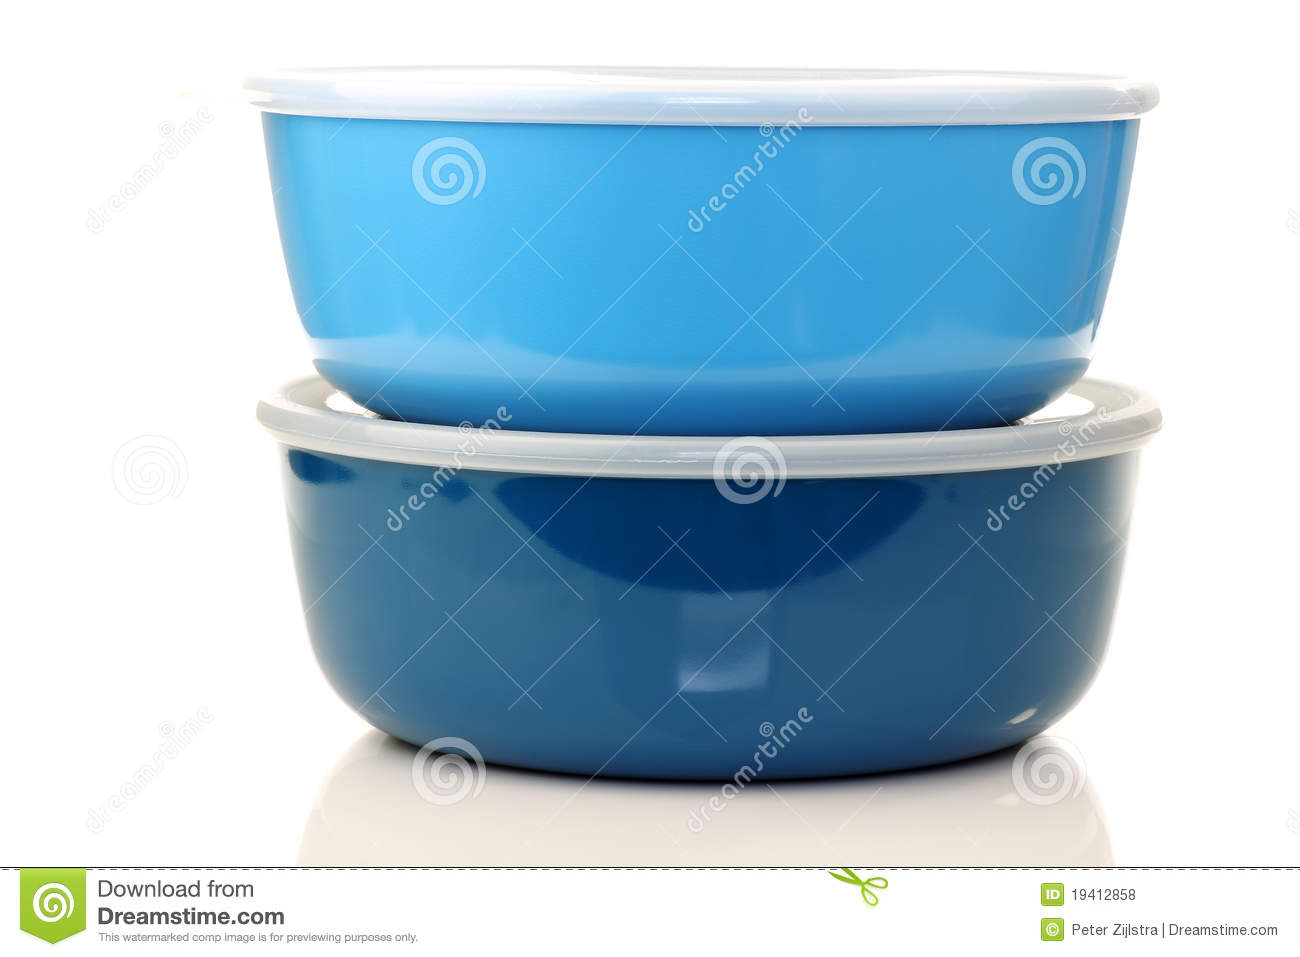 Greasy Plastic Food Container